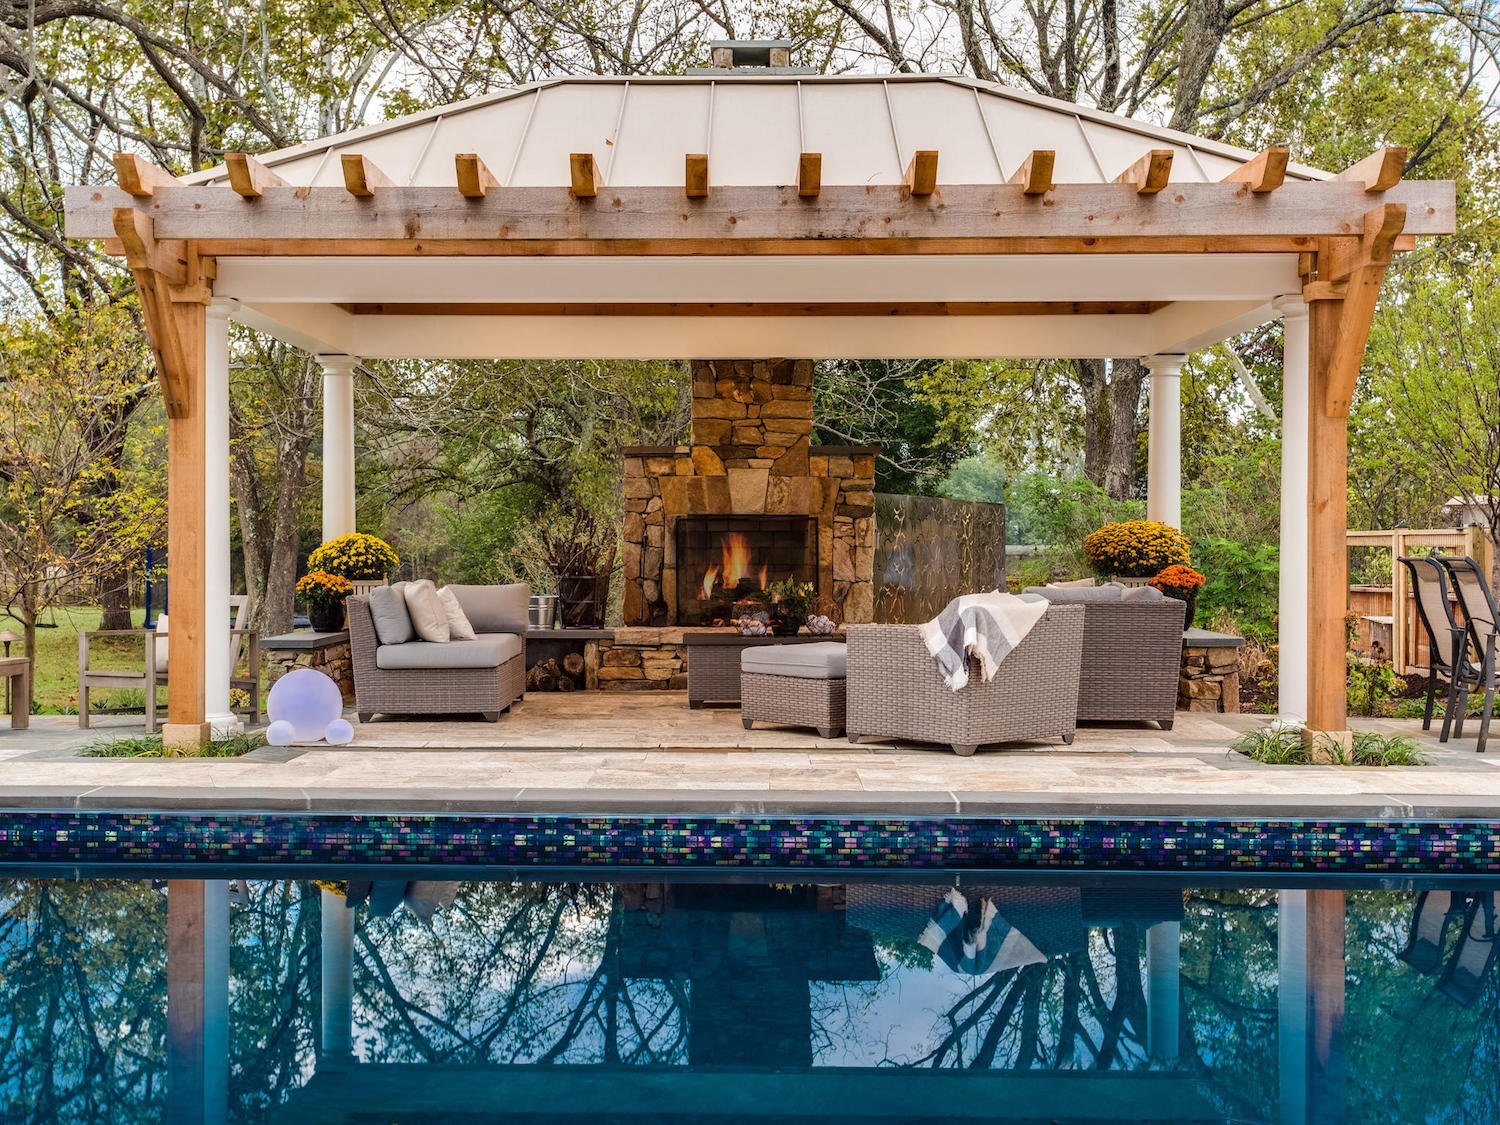 pool-patio-planting-pavilion-fireplace-6